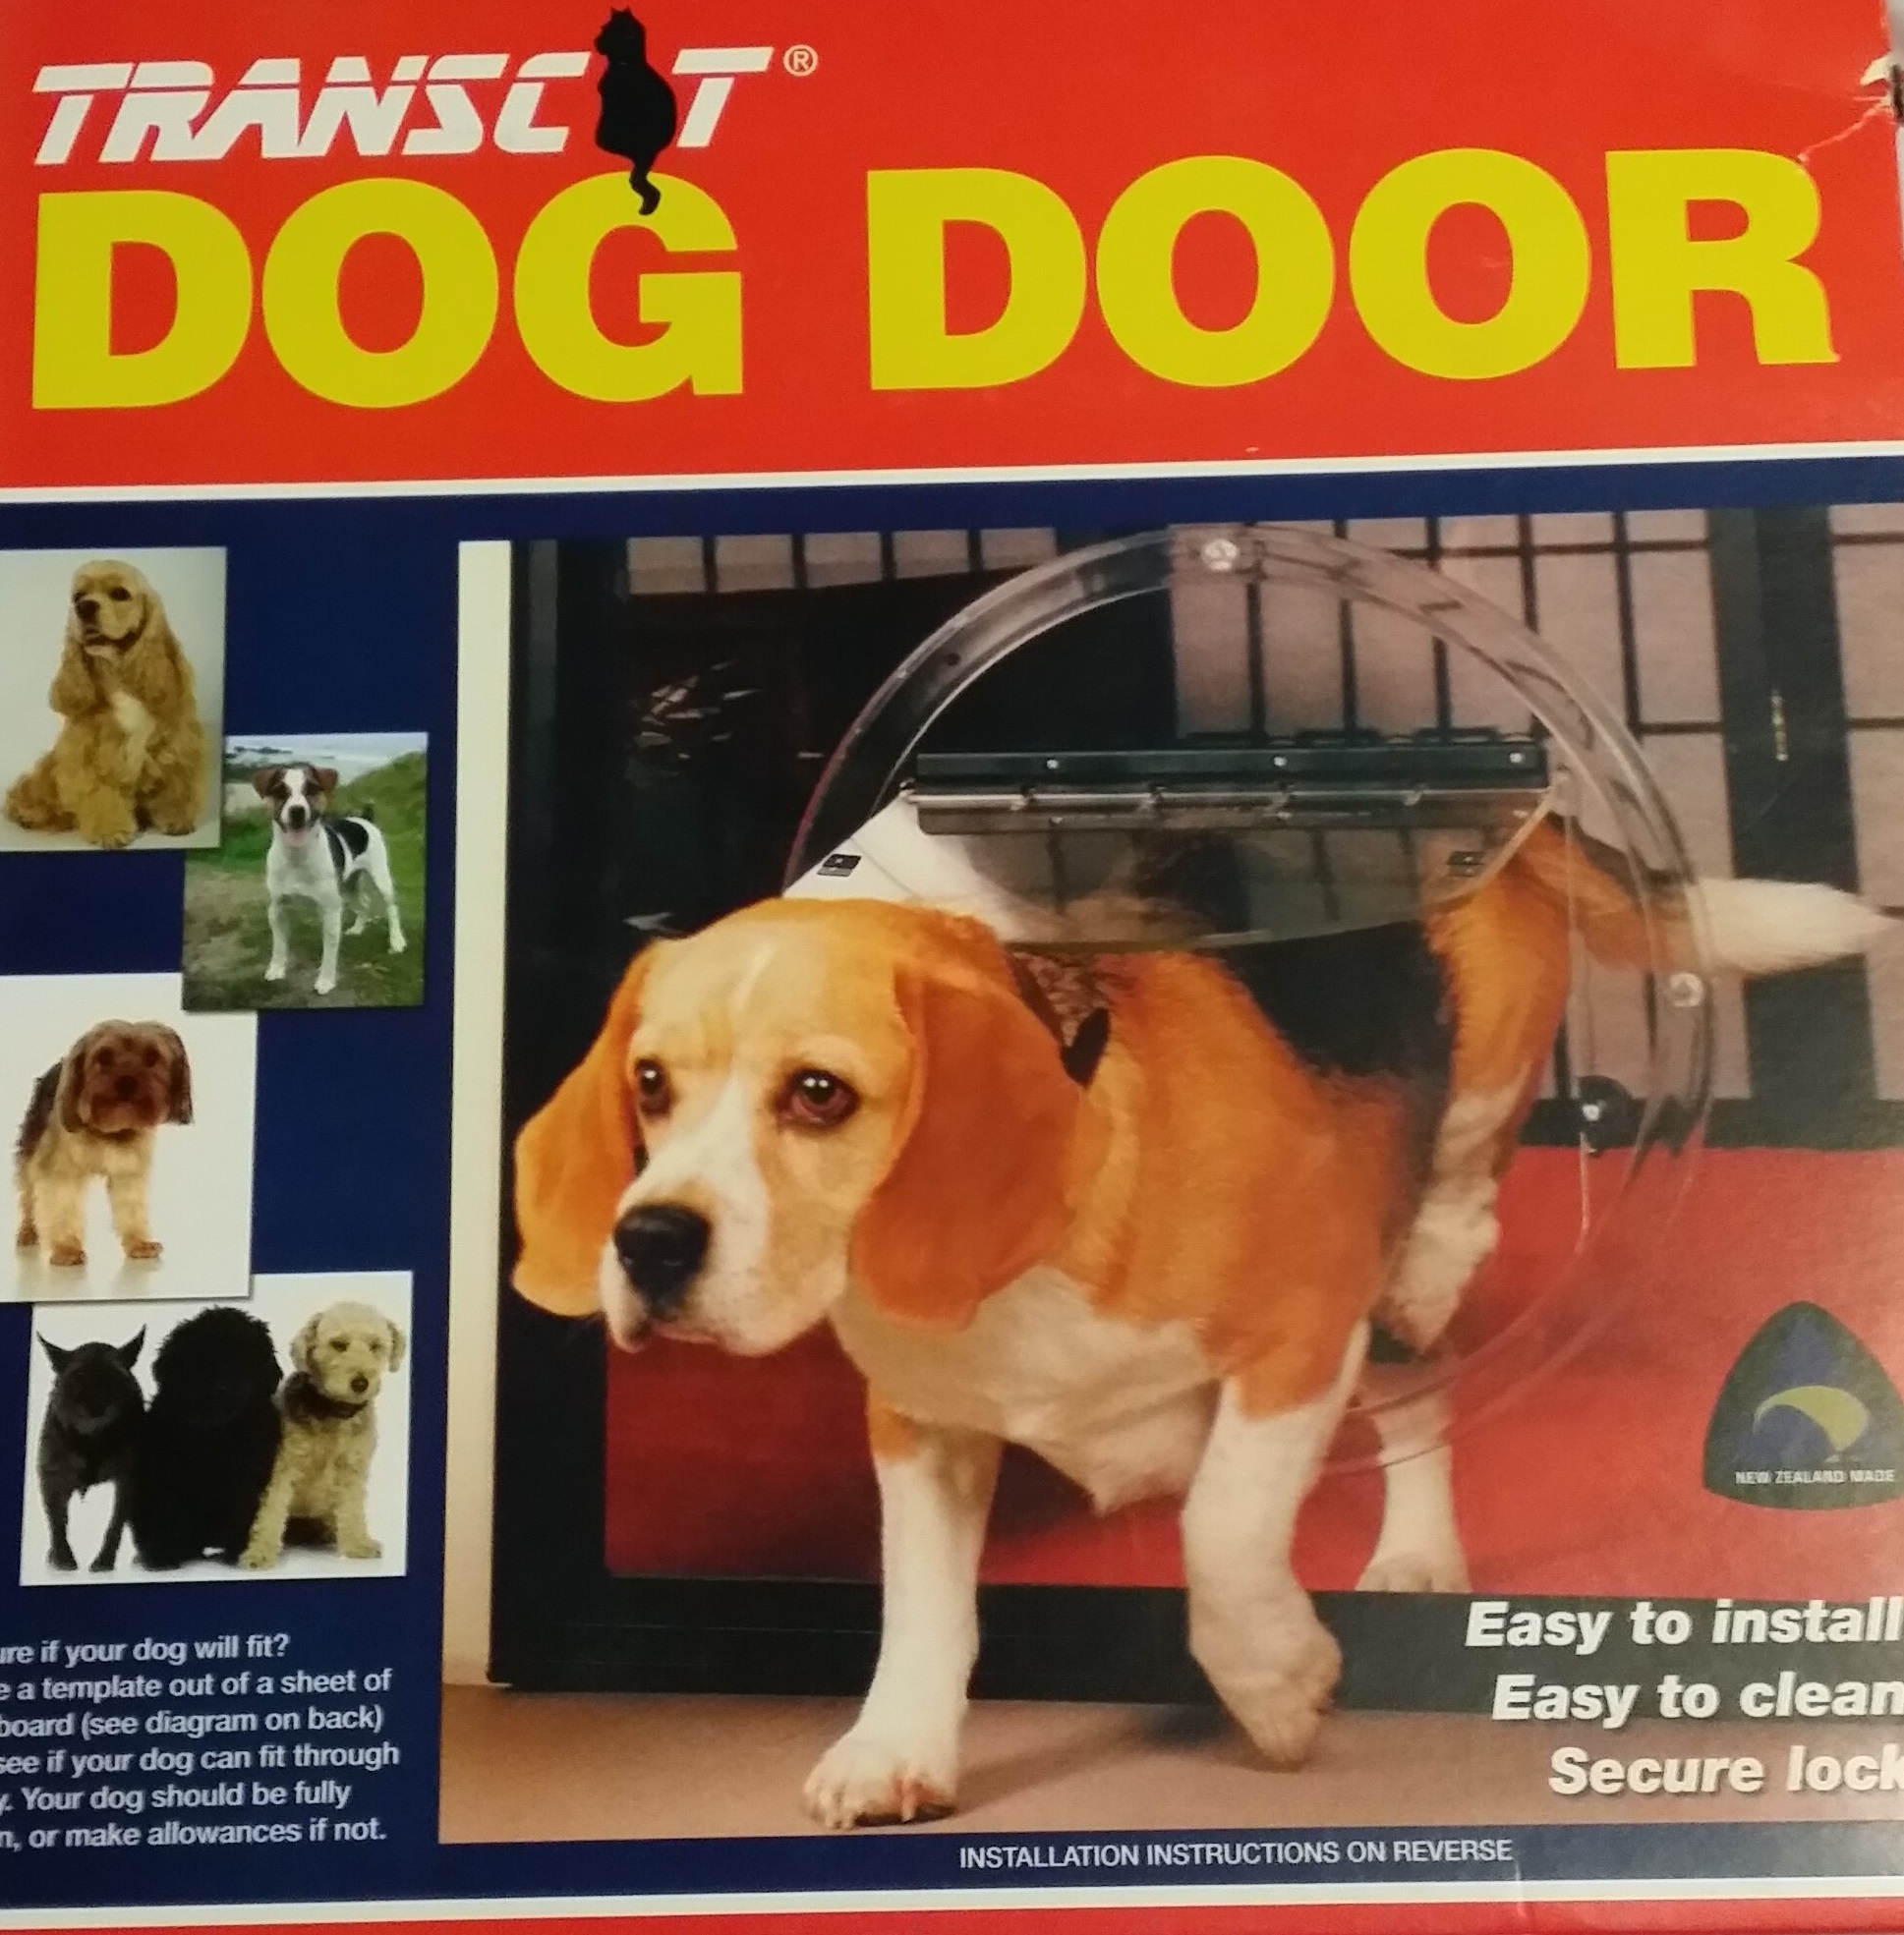 Transcat Dog Door 160 Gst Glassman Waikato